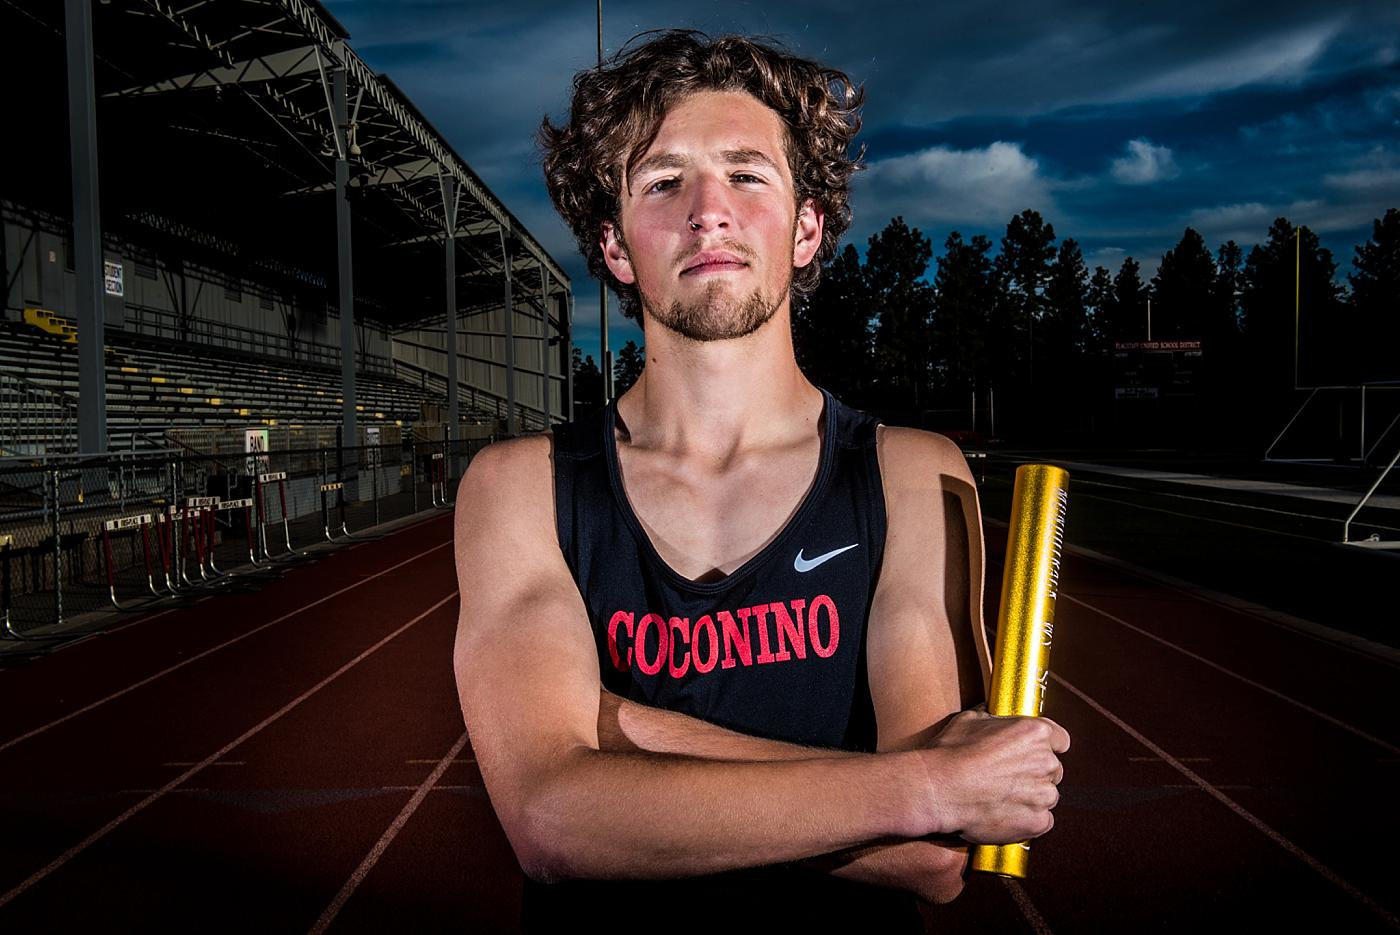 003-nate-coconino-track-flagstaff-2017ther2studio